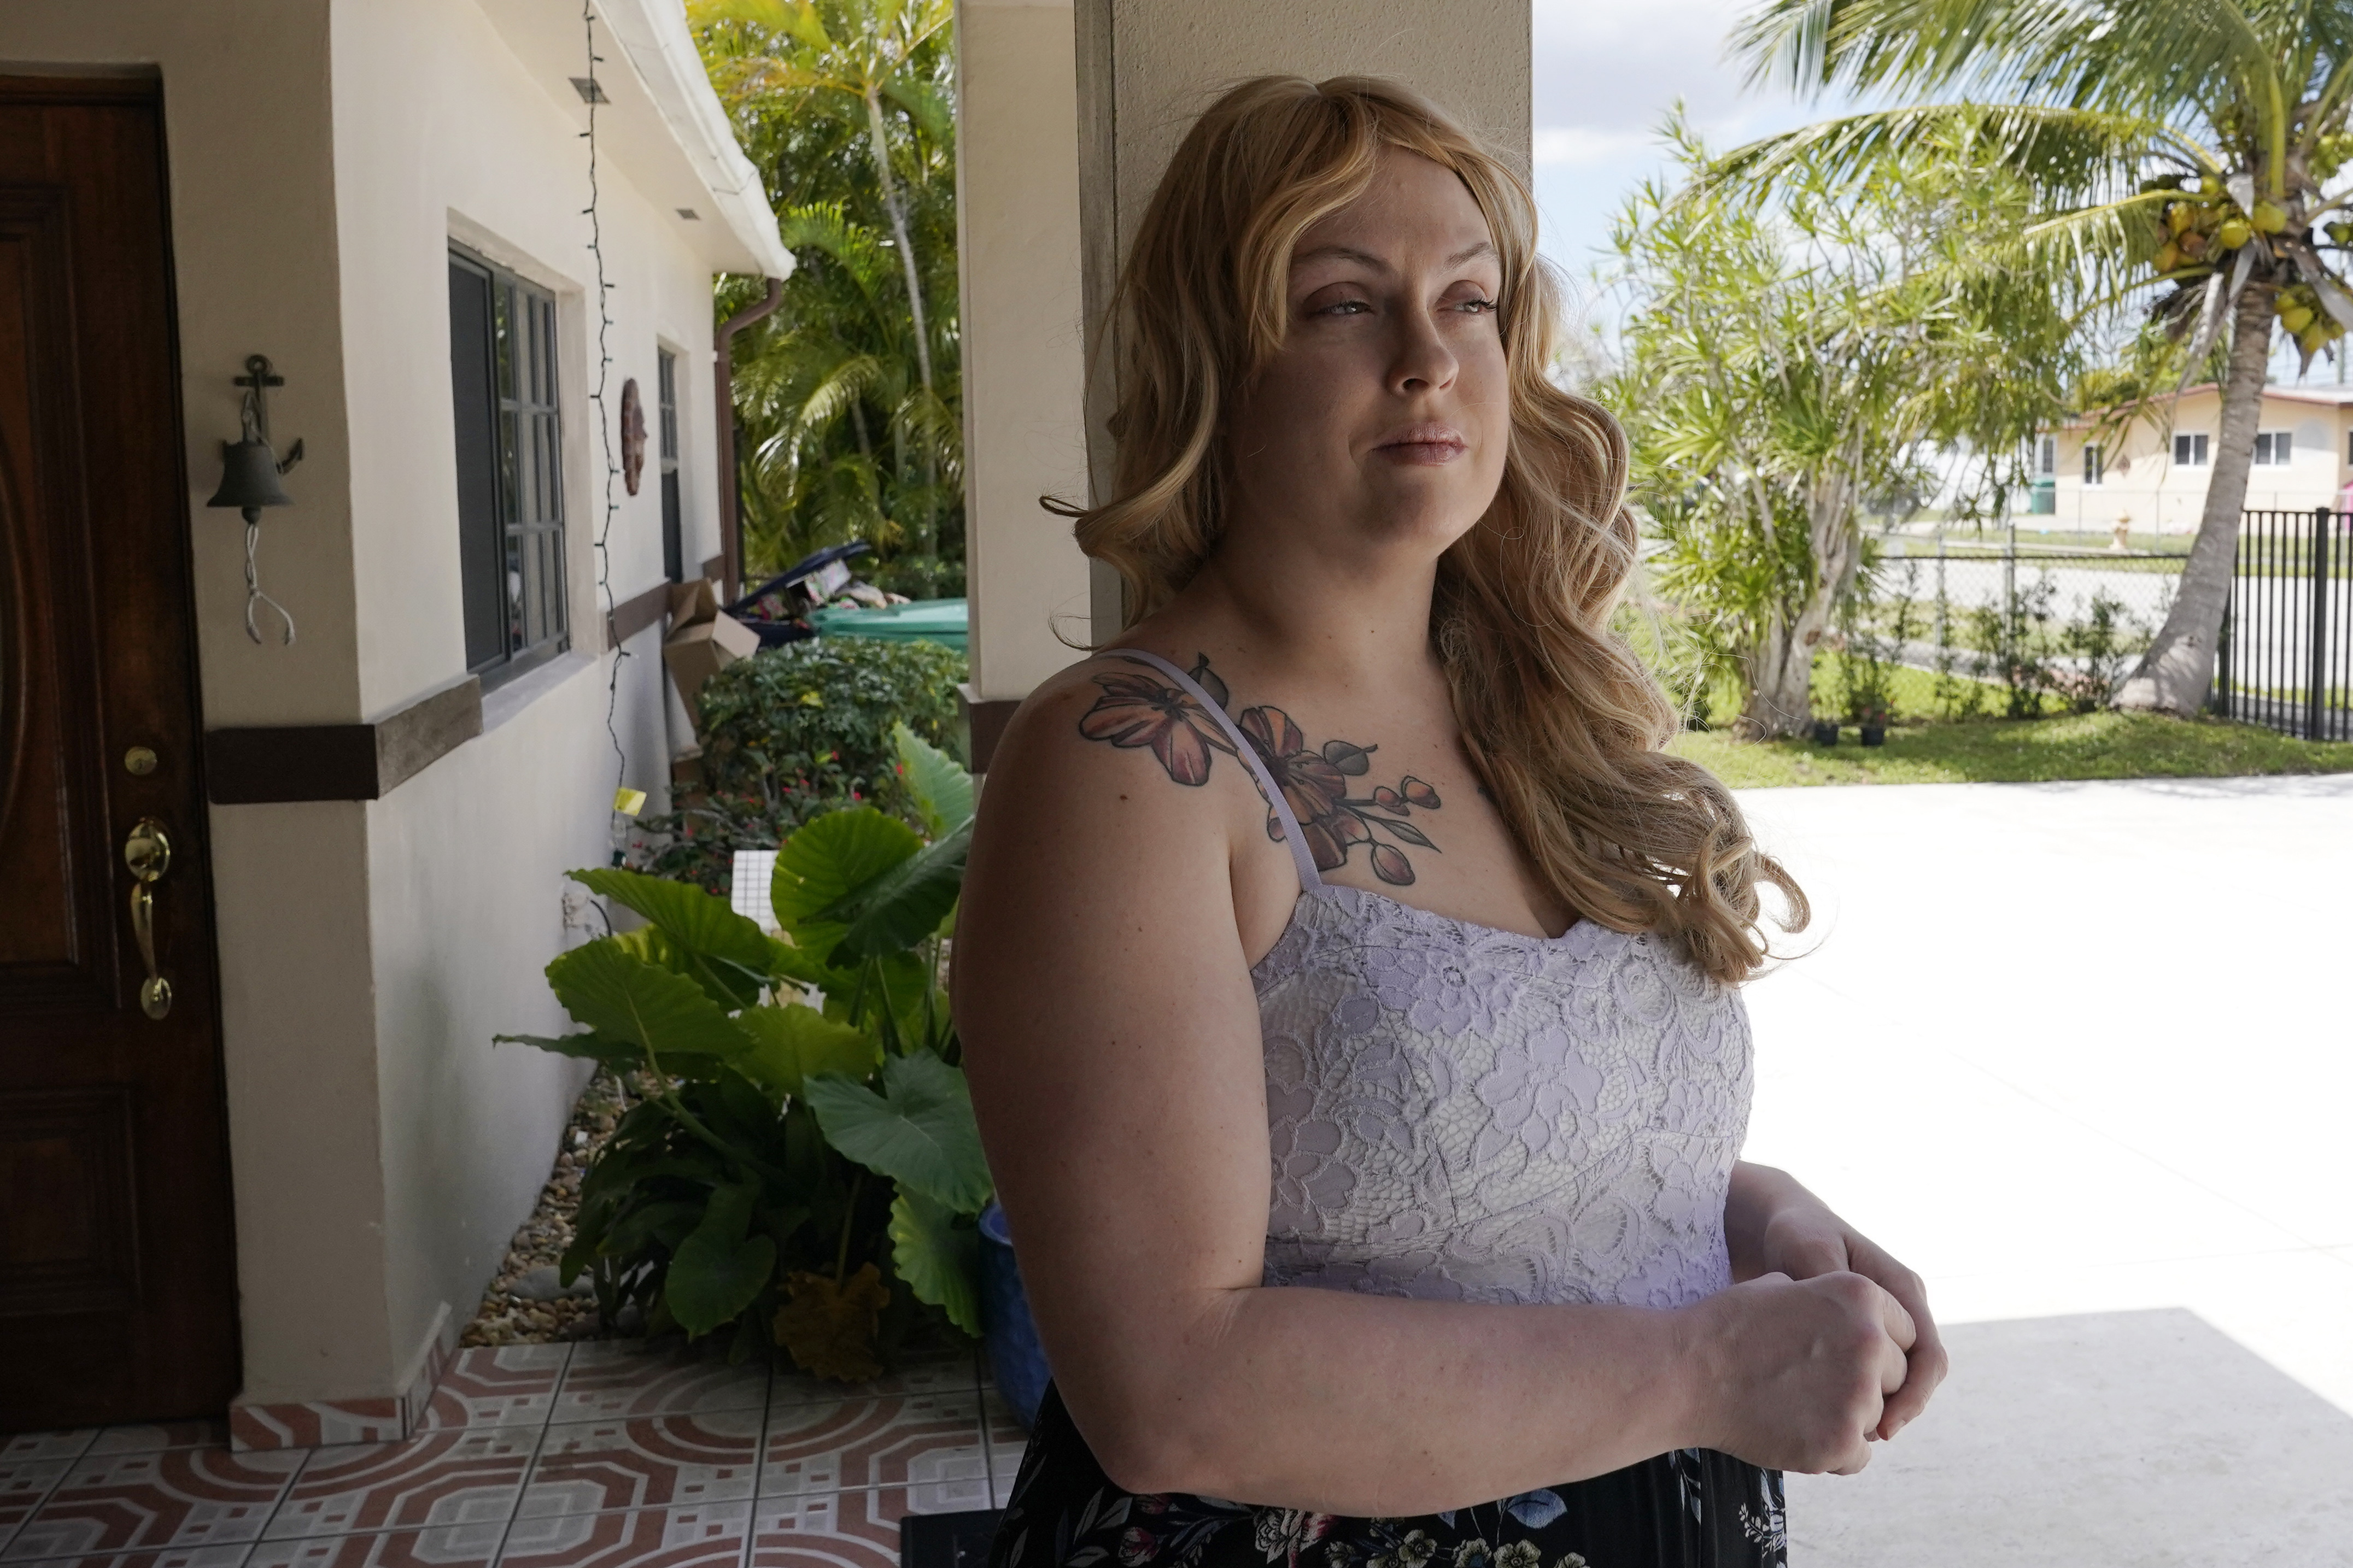 "Nicole Russell, who lives outside Miami, was fearful of leaving her home because of the coronavirus pandemic. She retreated to her bedroom for days at a time. While some felt restricted by the confinement of home ""caves,"" others found a sense of safety and comfort, becoming increasingly accustomed to the isolation."